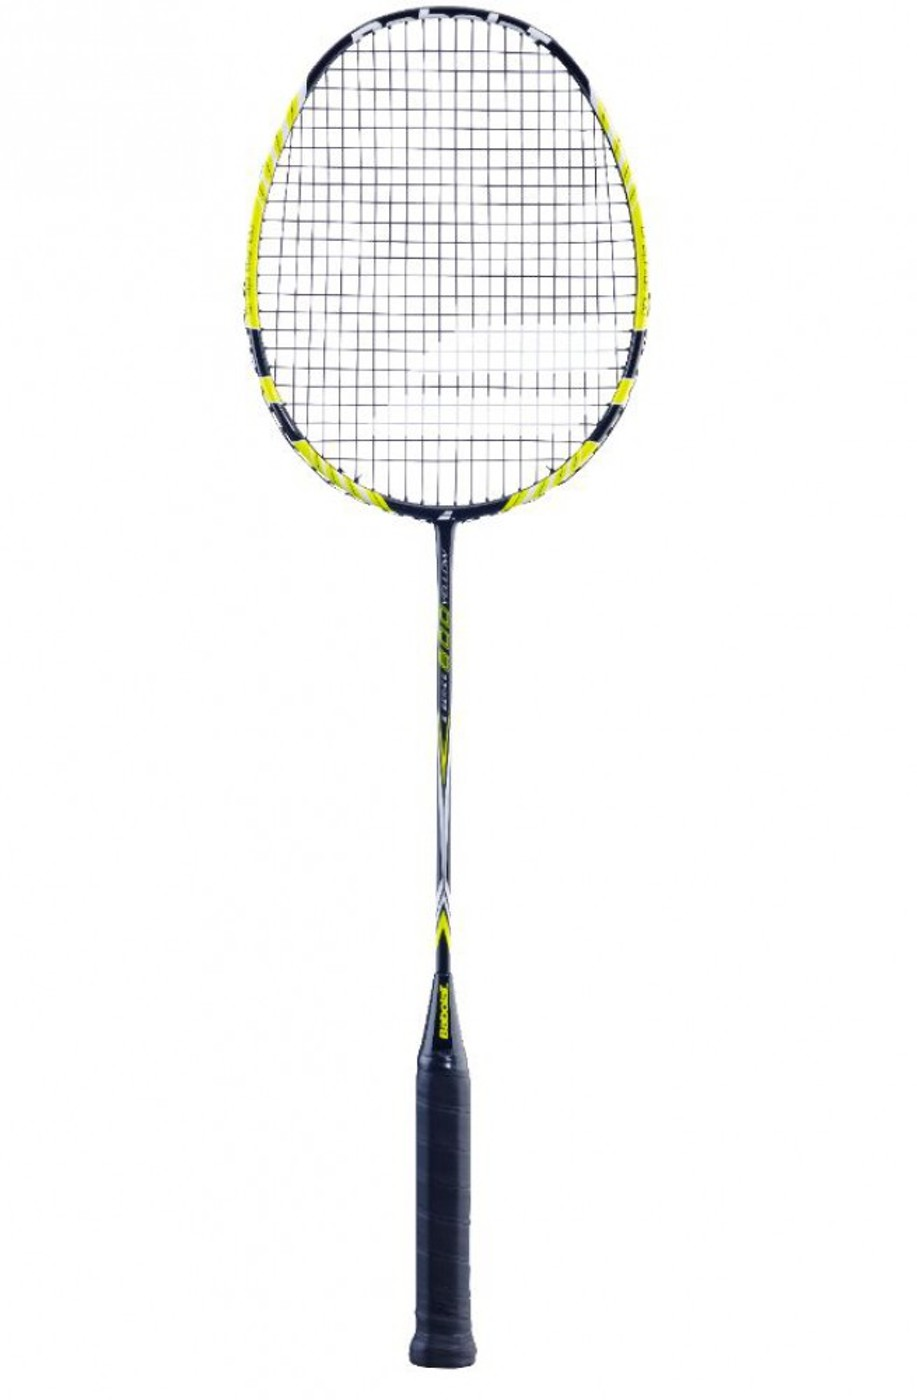 BABOLAT S-SERIES 800 S